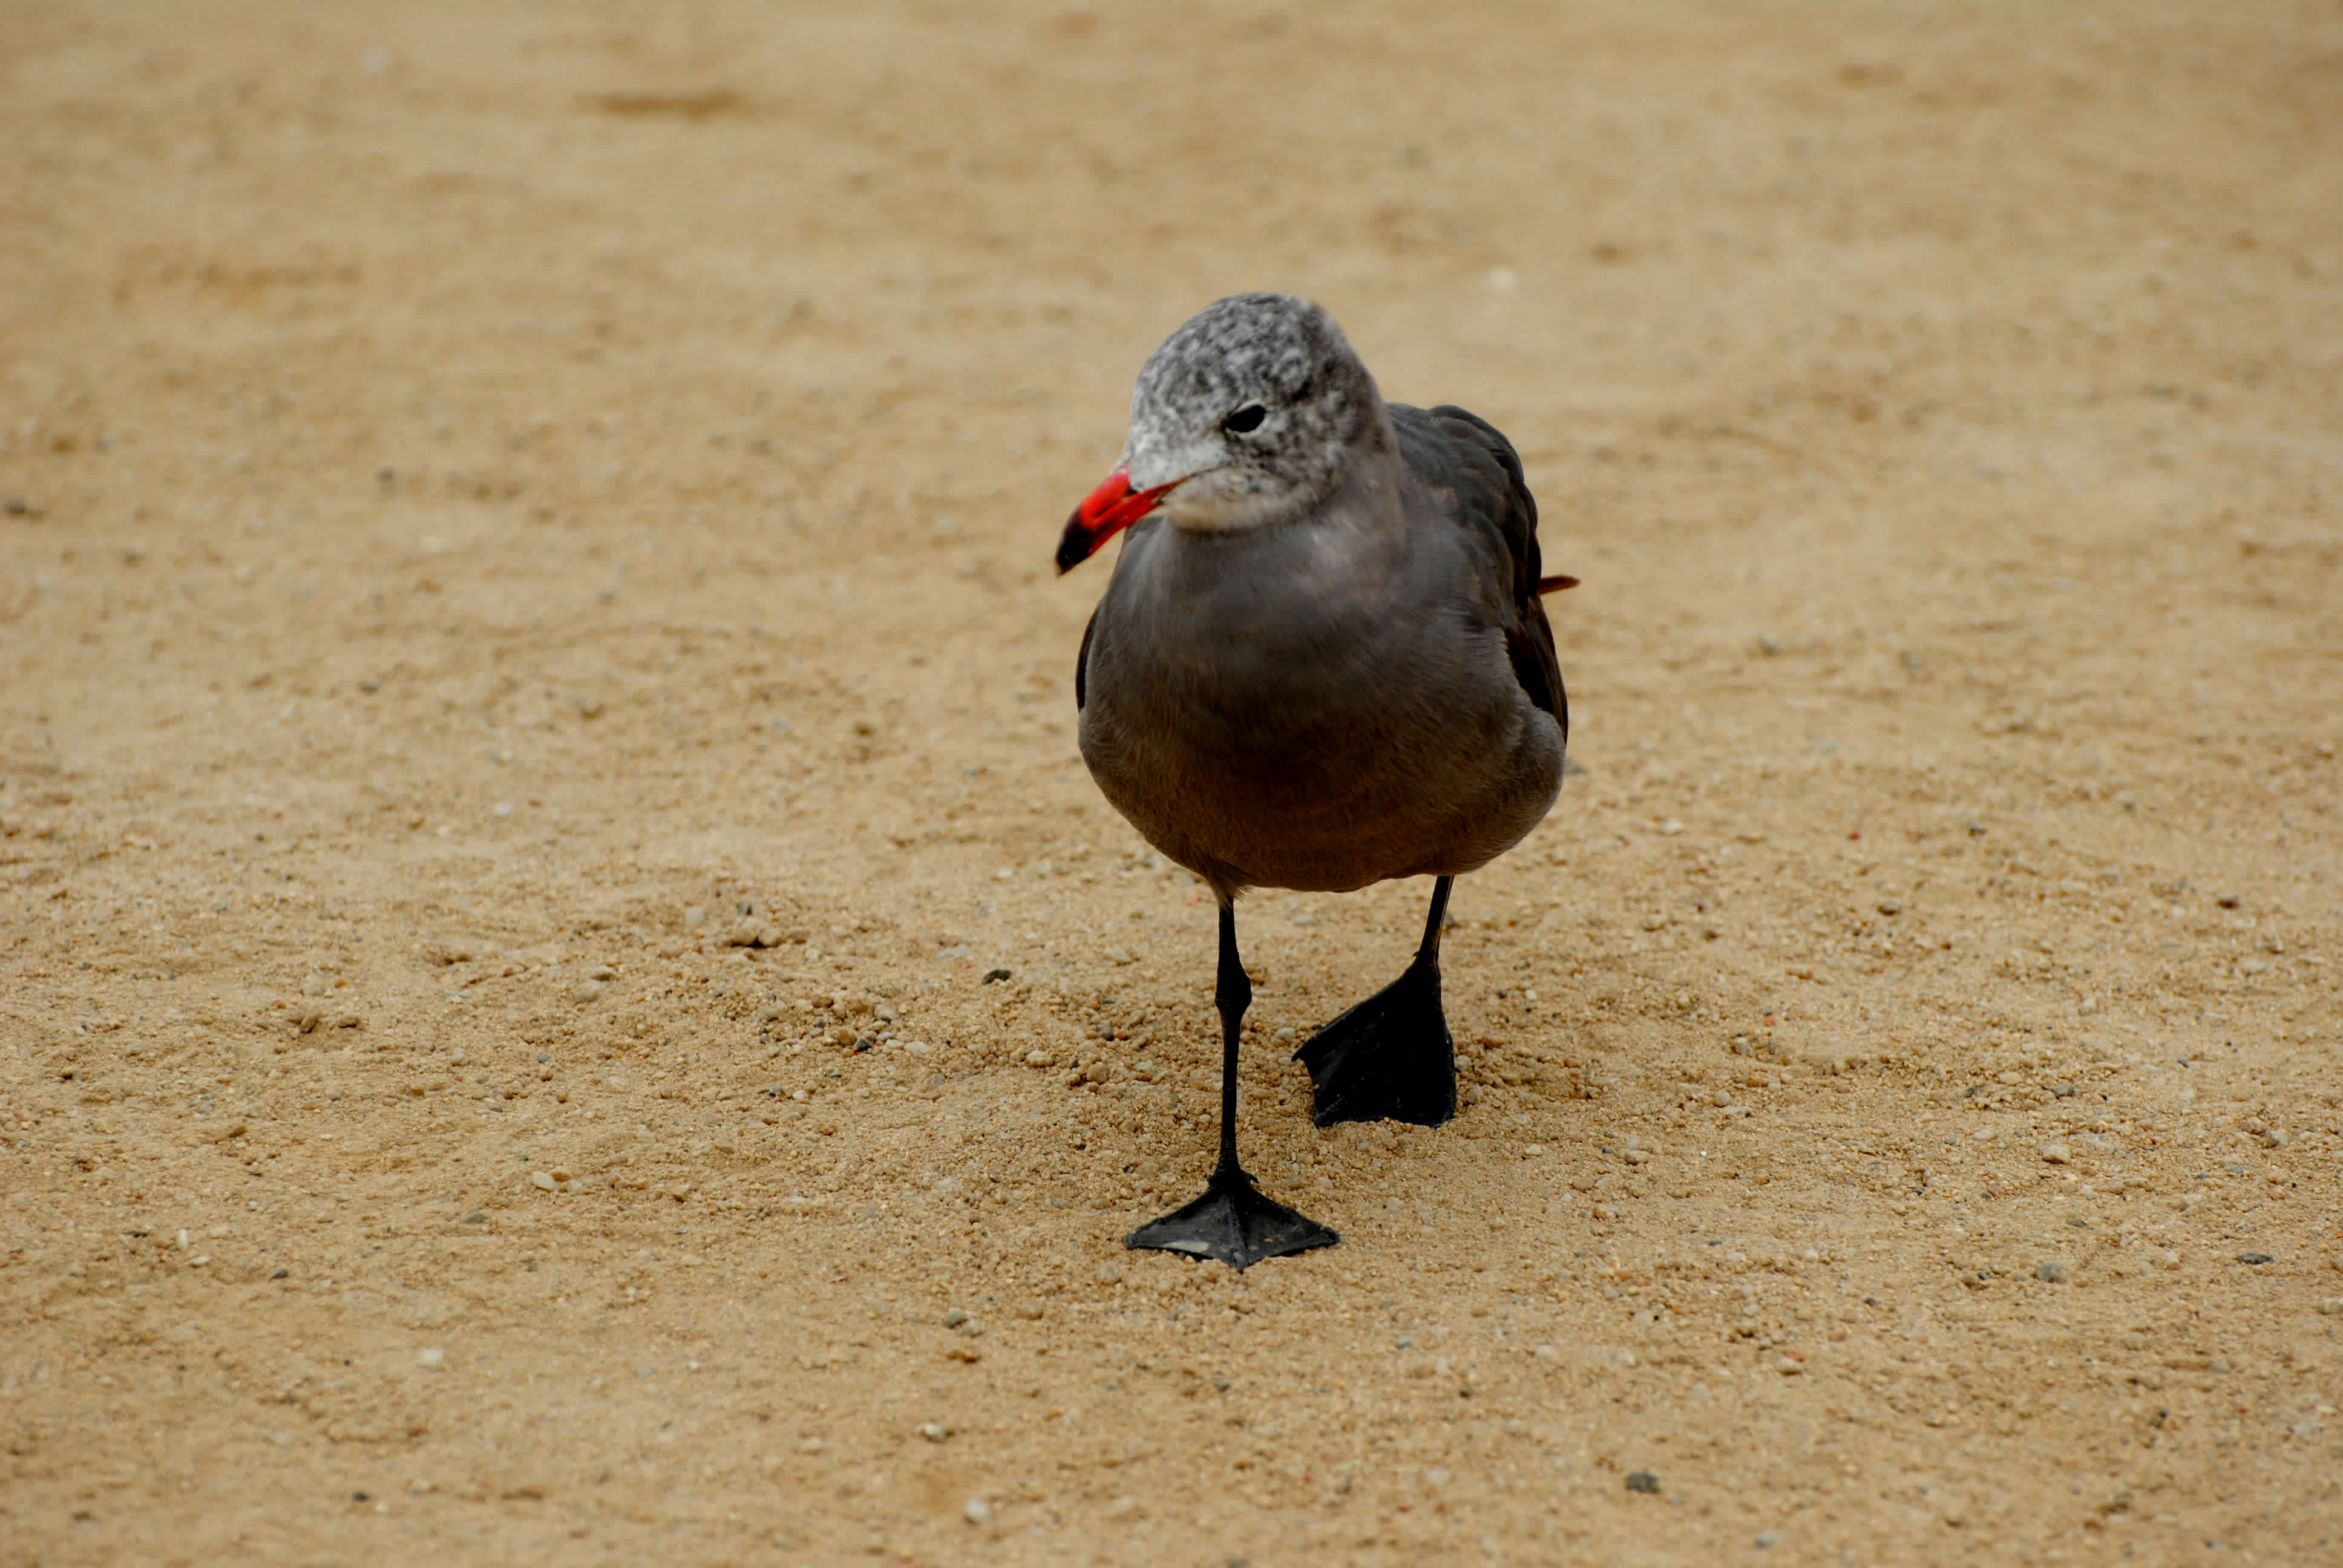 Bird walking on the sand.